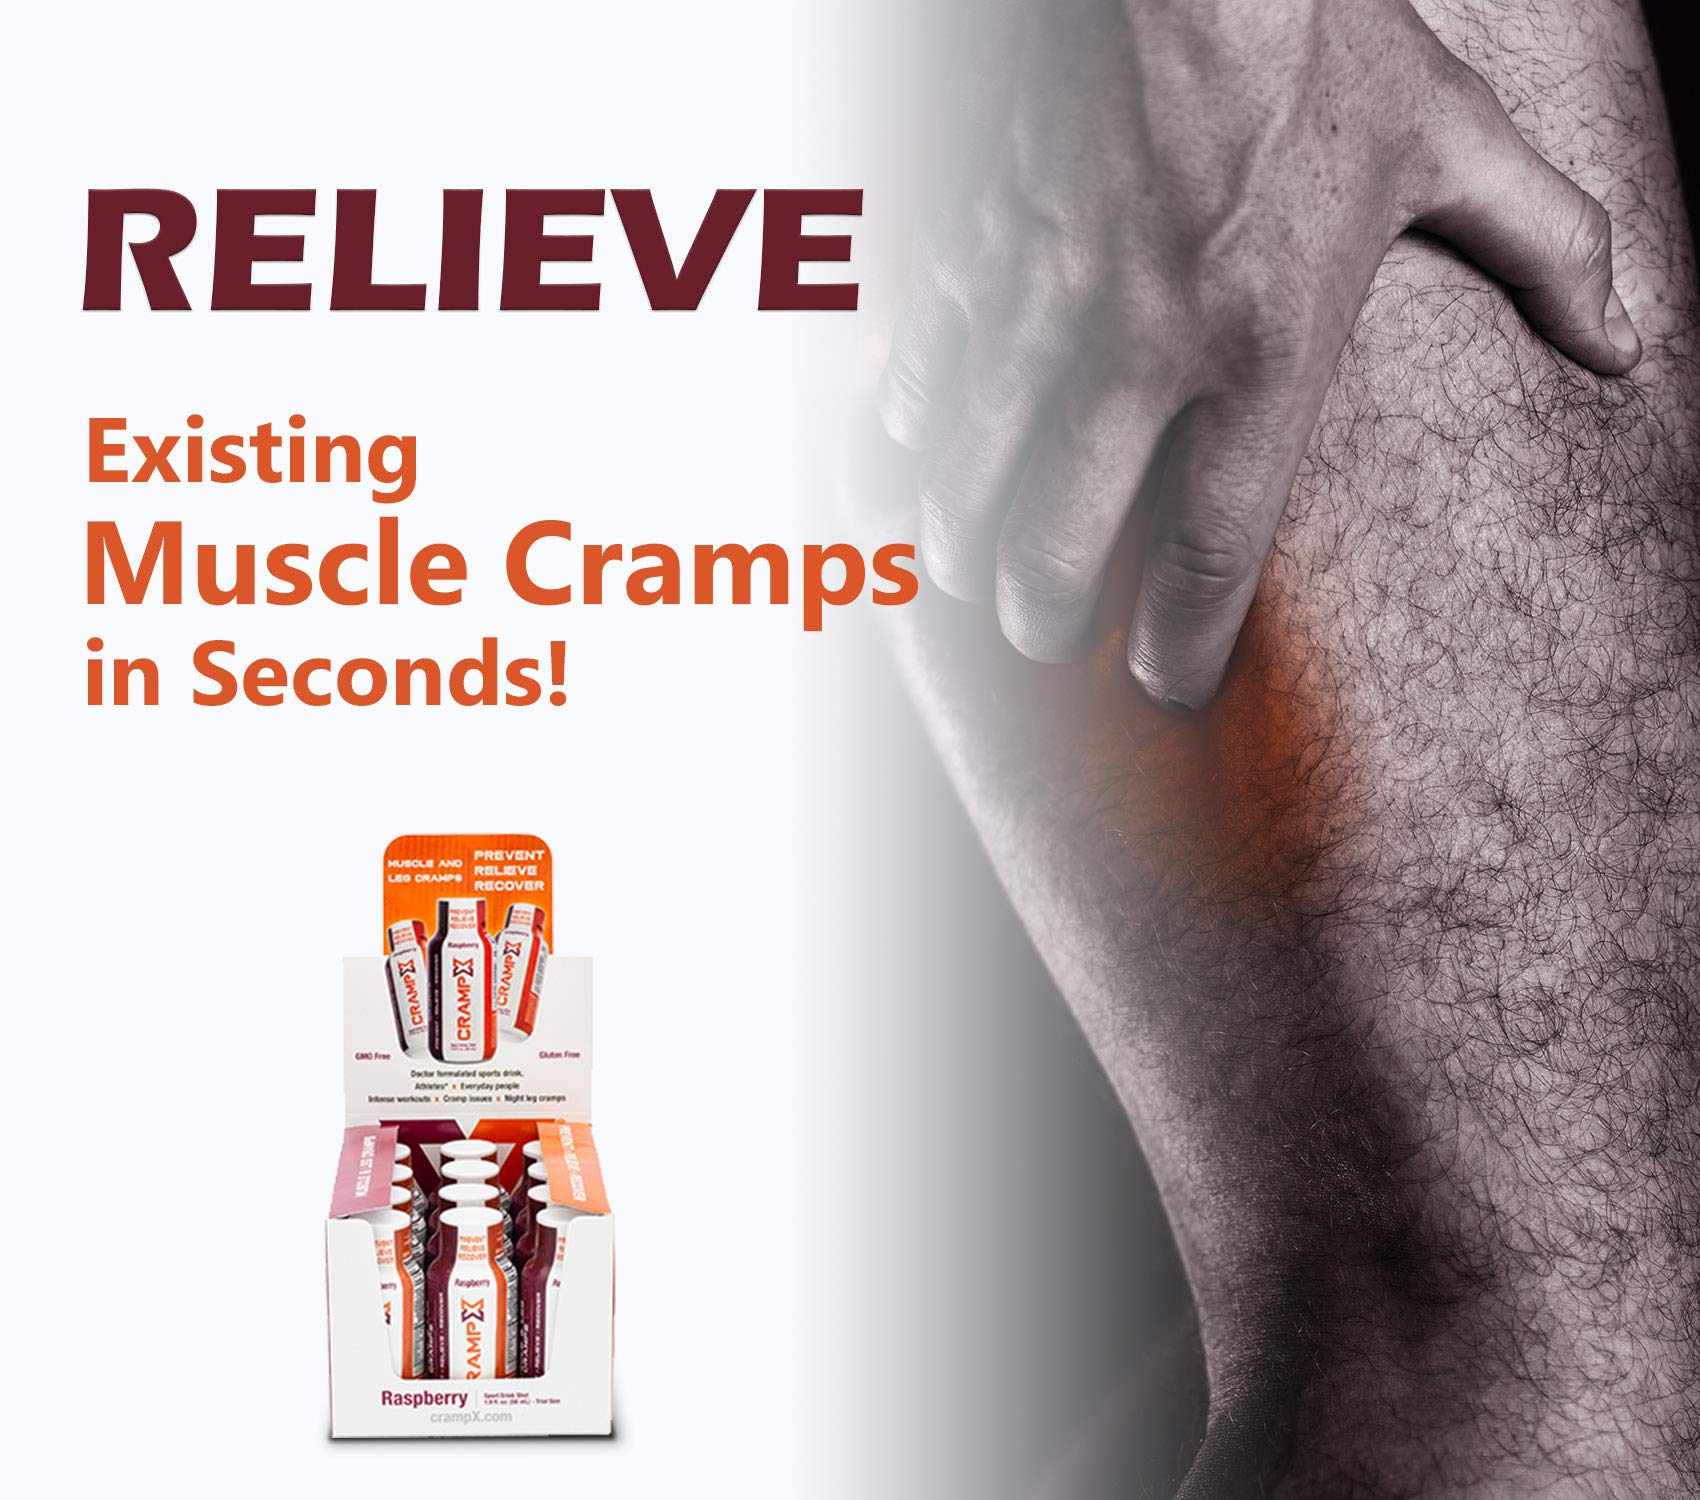 CrampX Muscle Cramp Relief Drink | Proven to Prevent and Treat Muscle Cramps in Seconds | Gluten Free Cramp Remedy for Hand Cramps, Leg Cramps, Foot Cramps | Raspberry 2 oz - Pack of 12 by CrampX (Image #4)